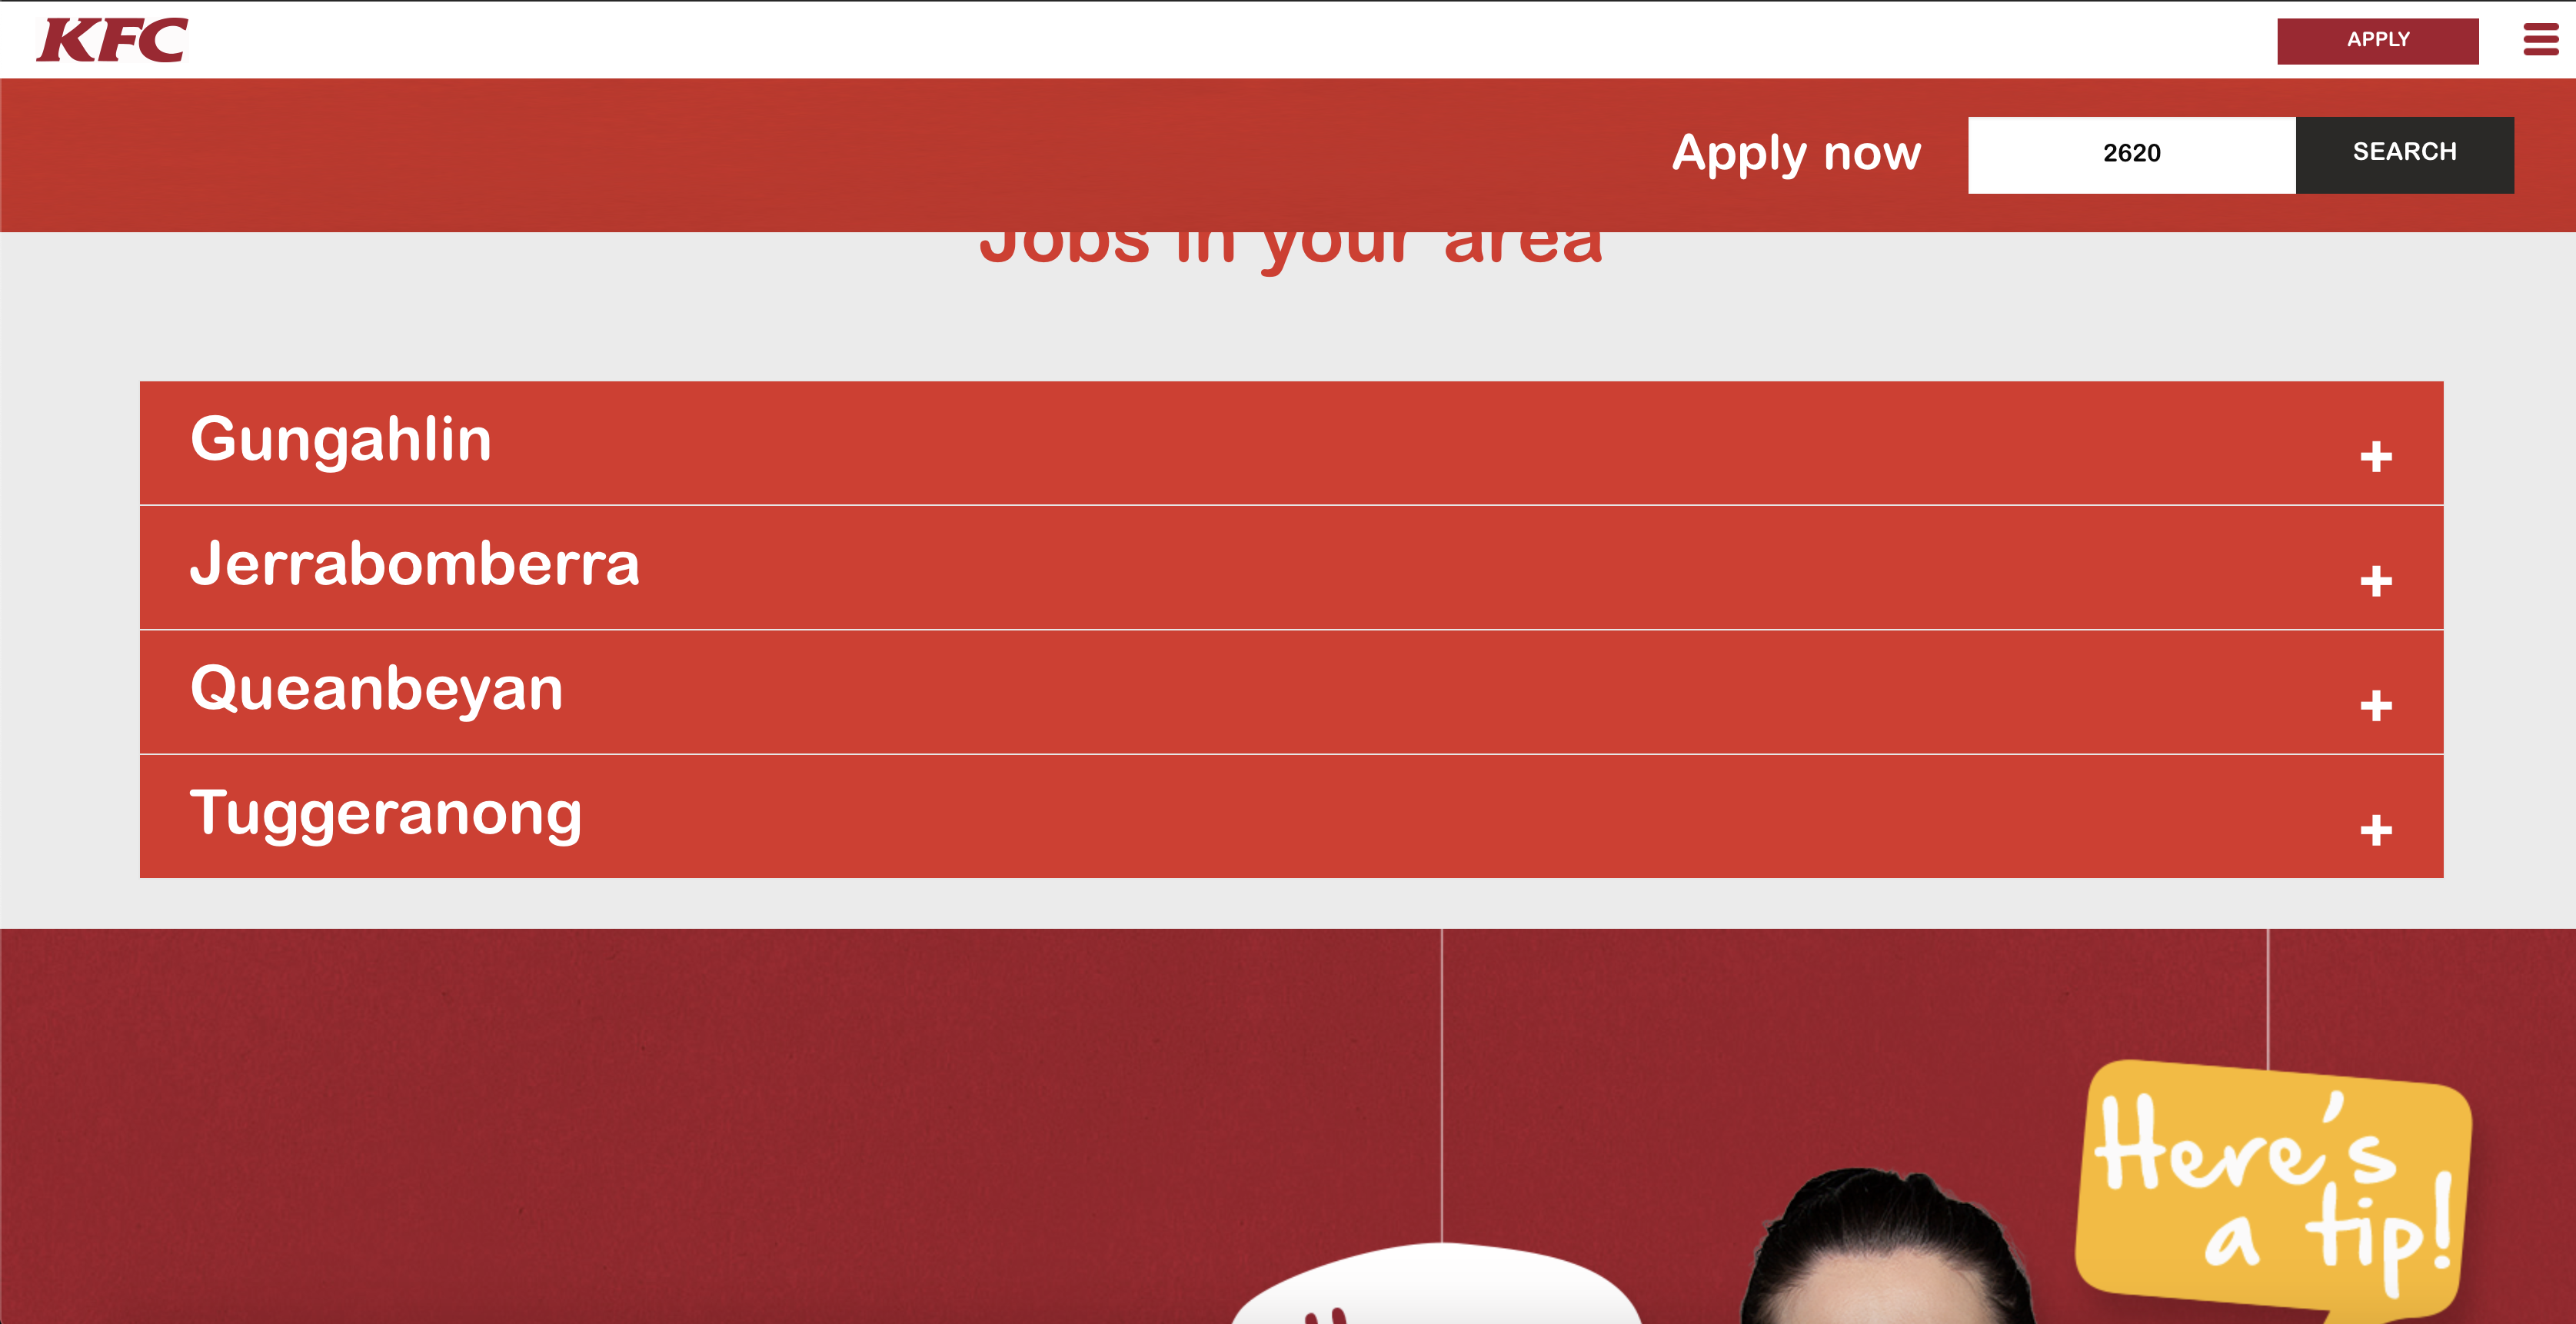 kfc australia job application step 5